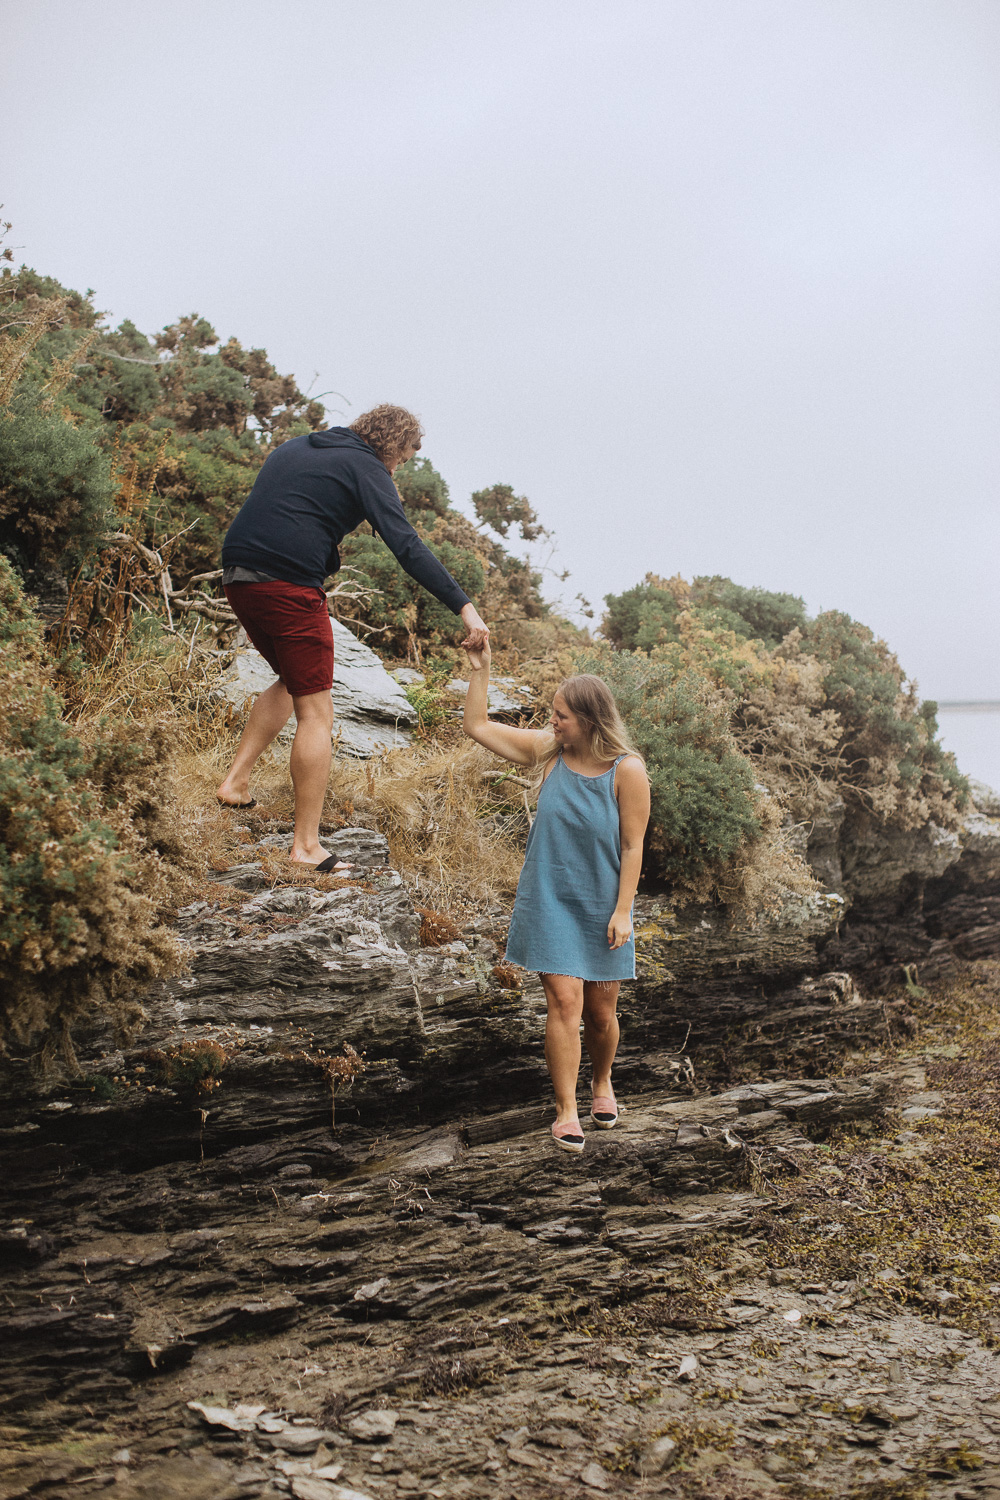 holding hands and climbing rocks at Trearddur Bay, Anglesey, North Wales